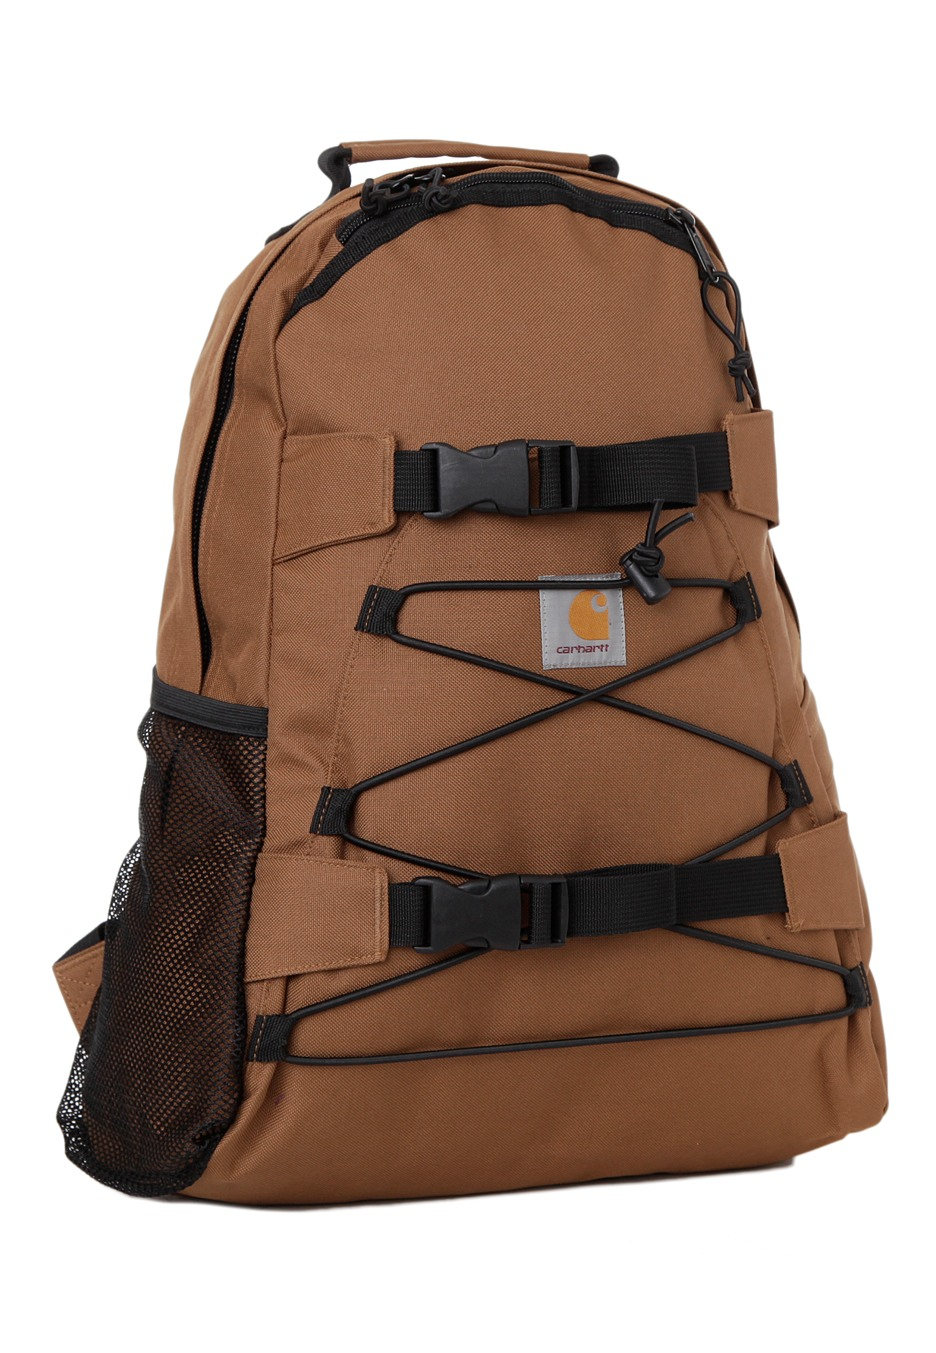 carhartt wip kickflip carhartt brown sac a dos boutique streetwear fr. Black Bedroom Furniture Sets. Home Design Ideas